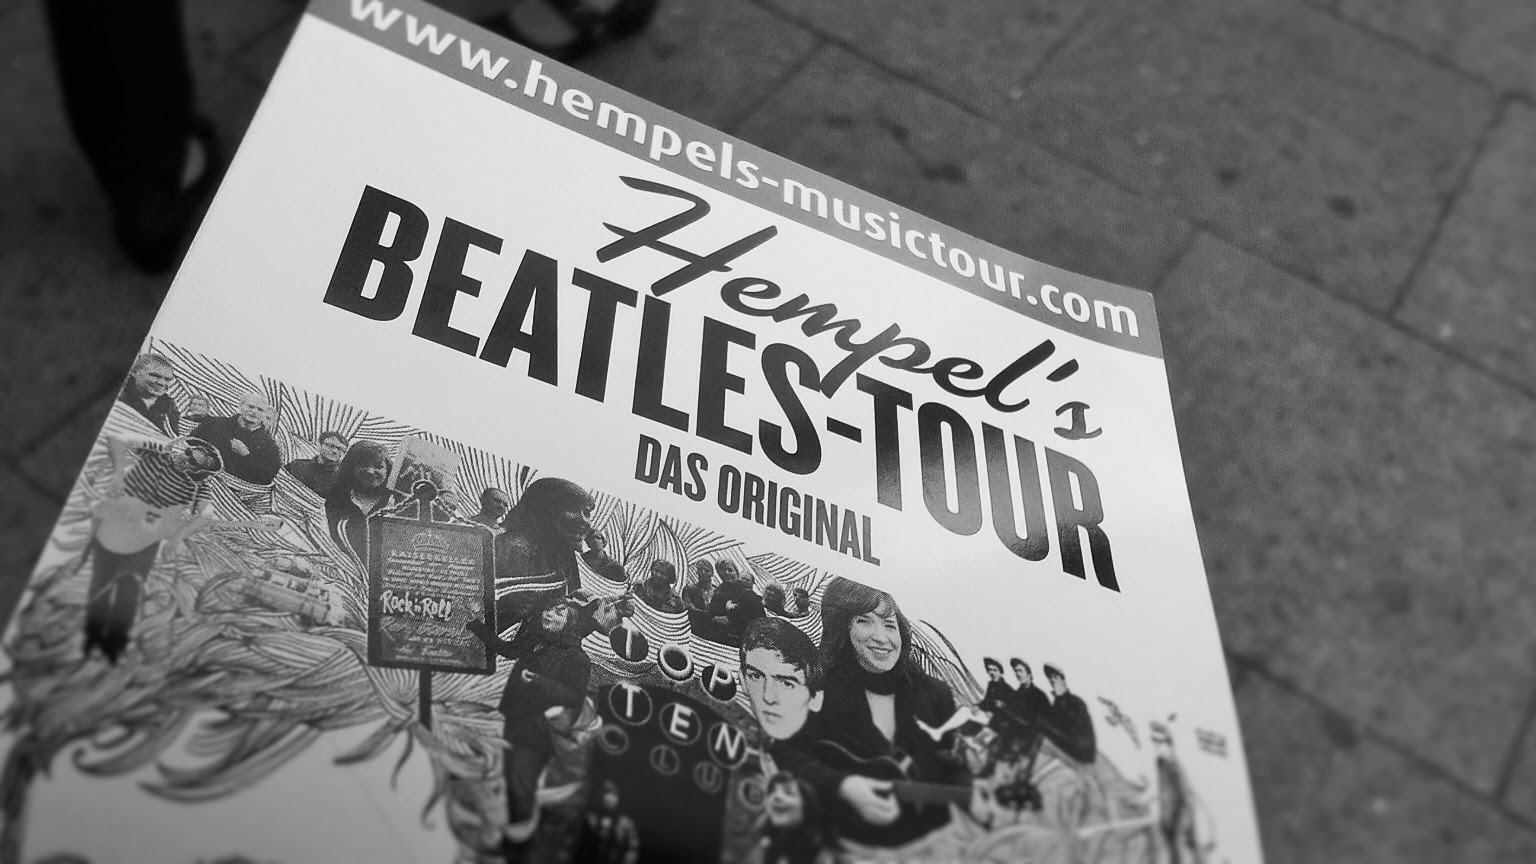 Tour dei Beatles ad Amburgo